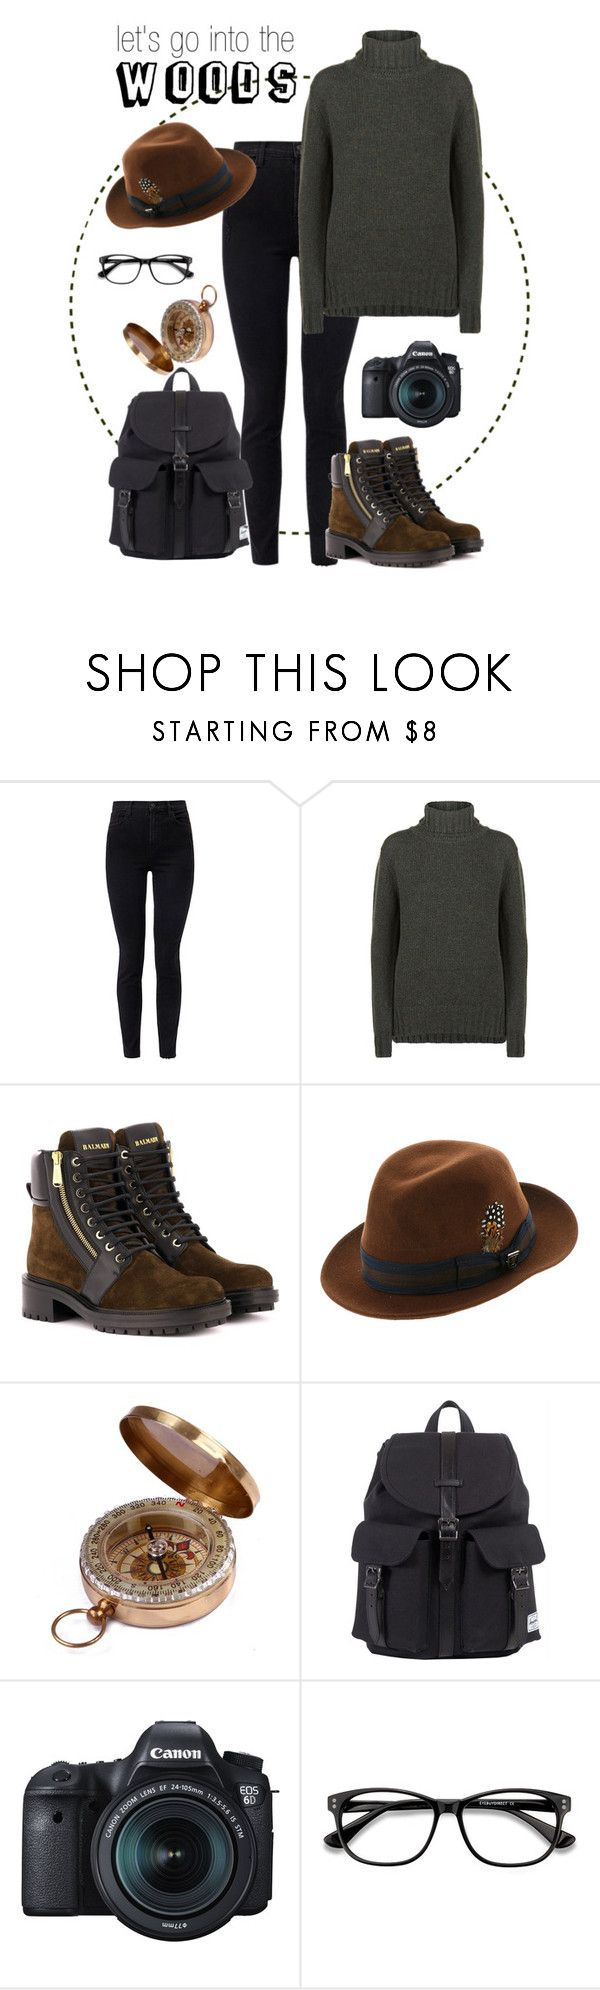 """Balmain boots and fedora"" by noemi-k ❤ liked on Polyvore featuring J Brand, Purdey, Balmain, Stacy Adams, Herschel, Eos and EyeBuyDirect.com"